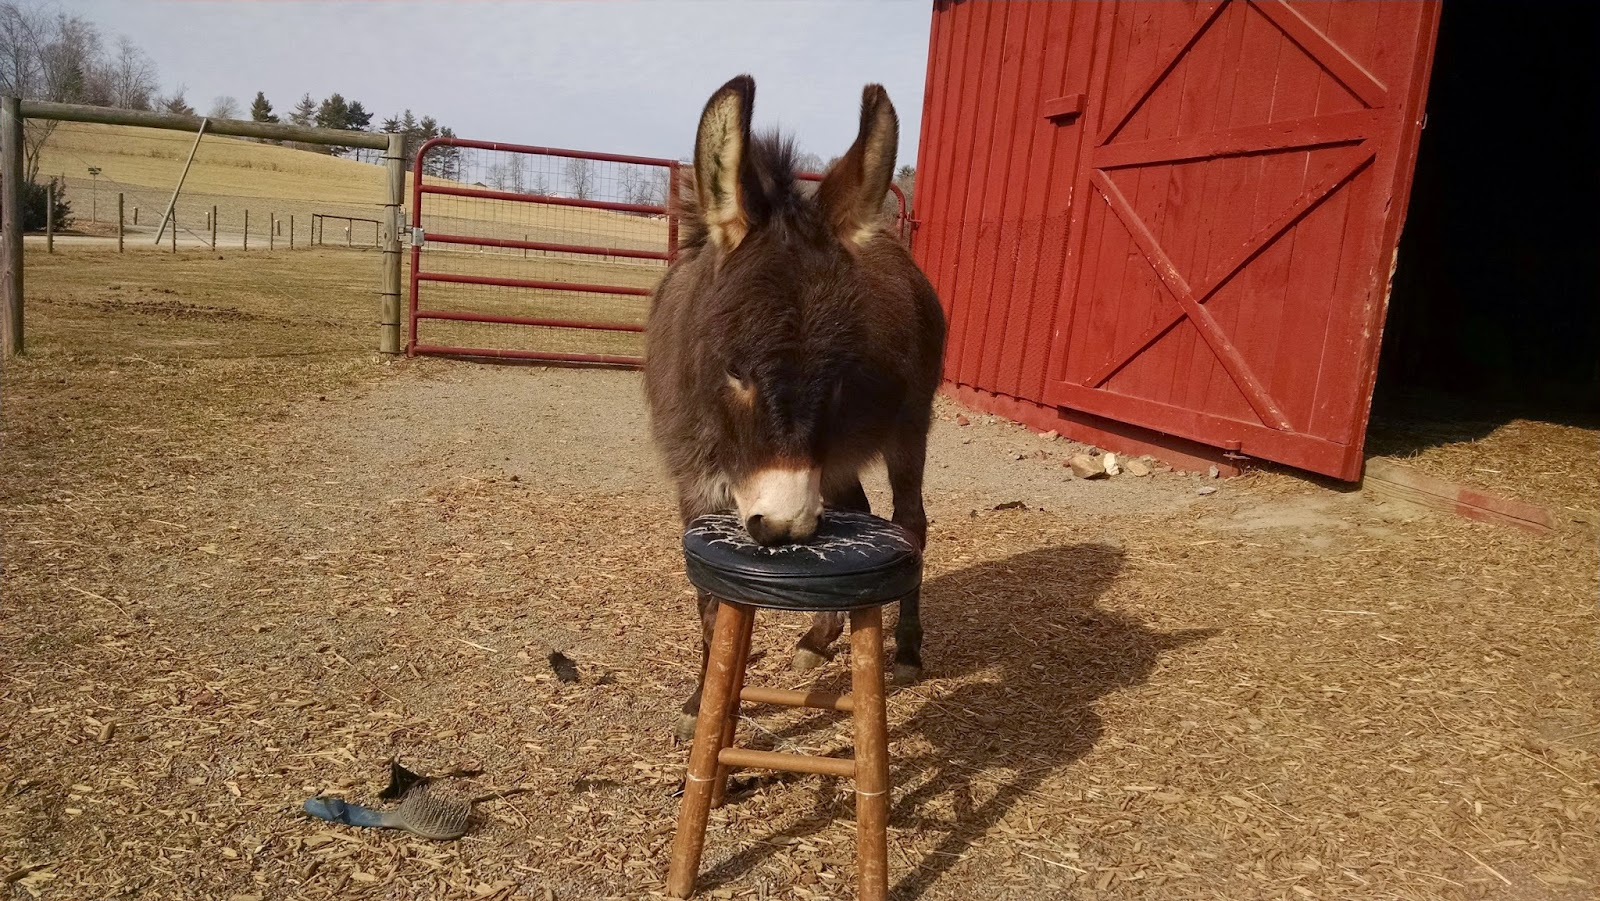 miniature donkey chewing on a sitting stool